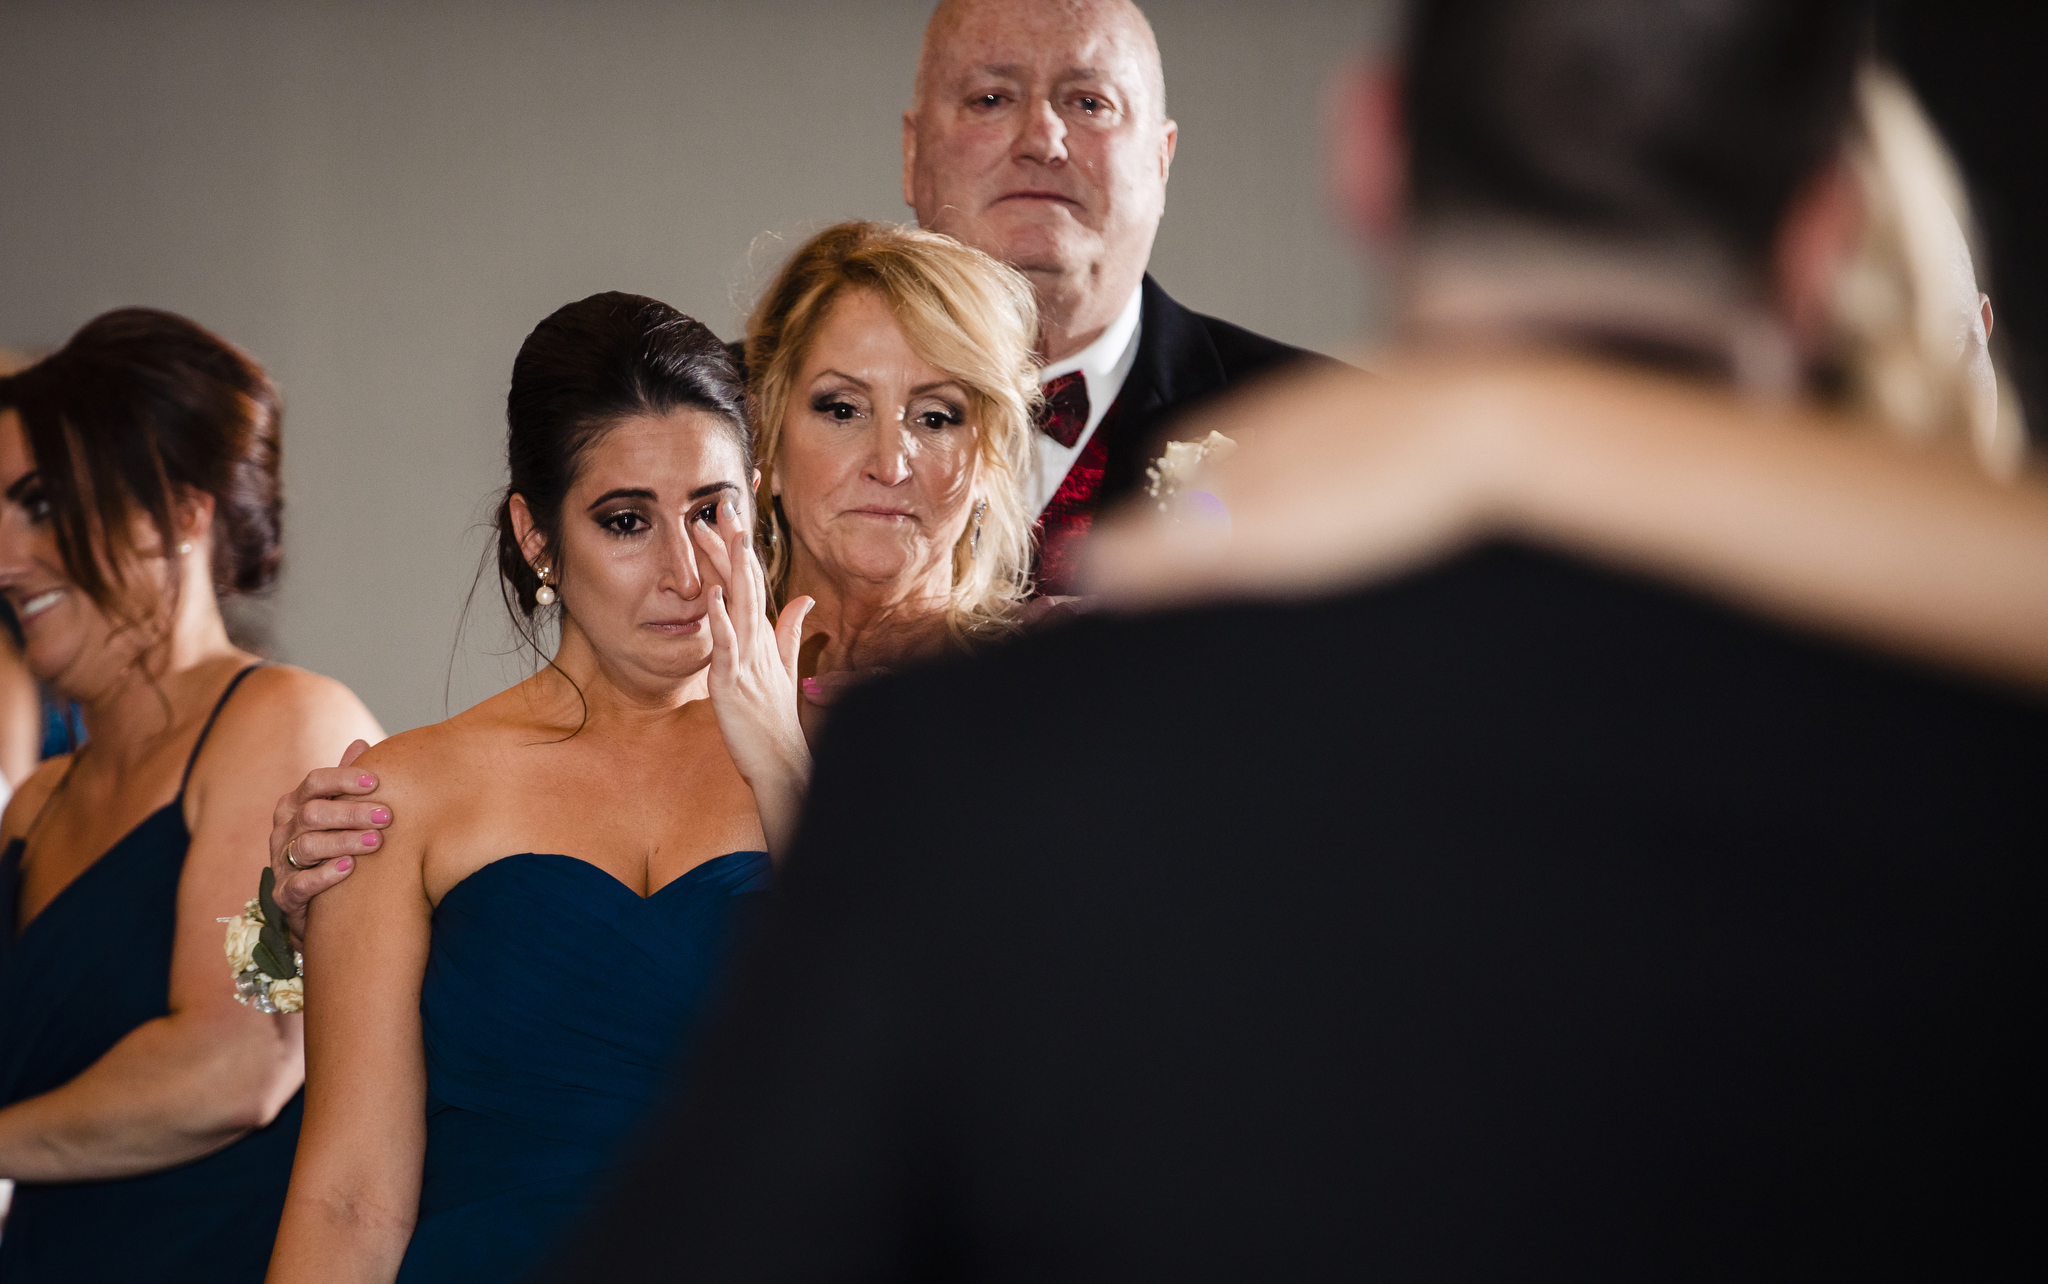 bridesmaid-cries-during-first-dance.jpg